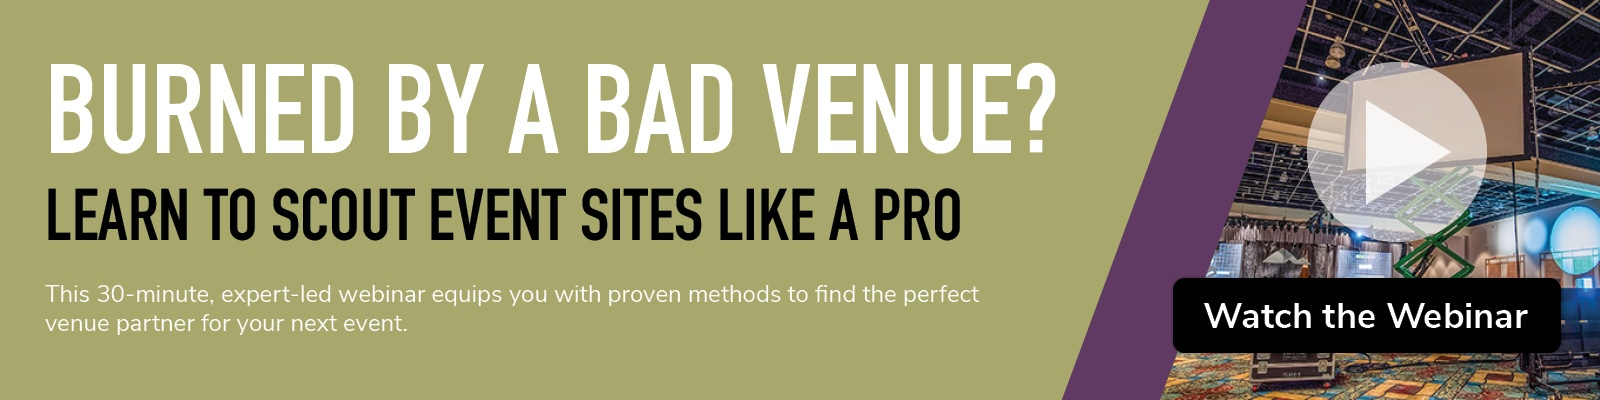 burned by a bad venue?; learn to scout event sites like a pro; watch the webinar